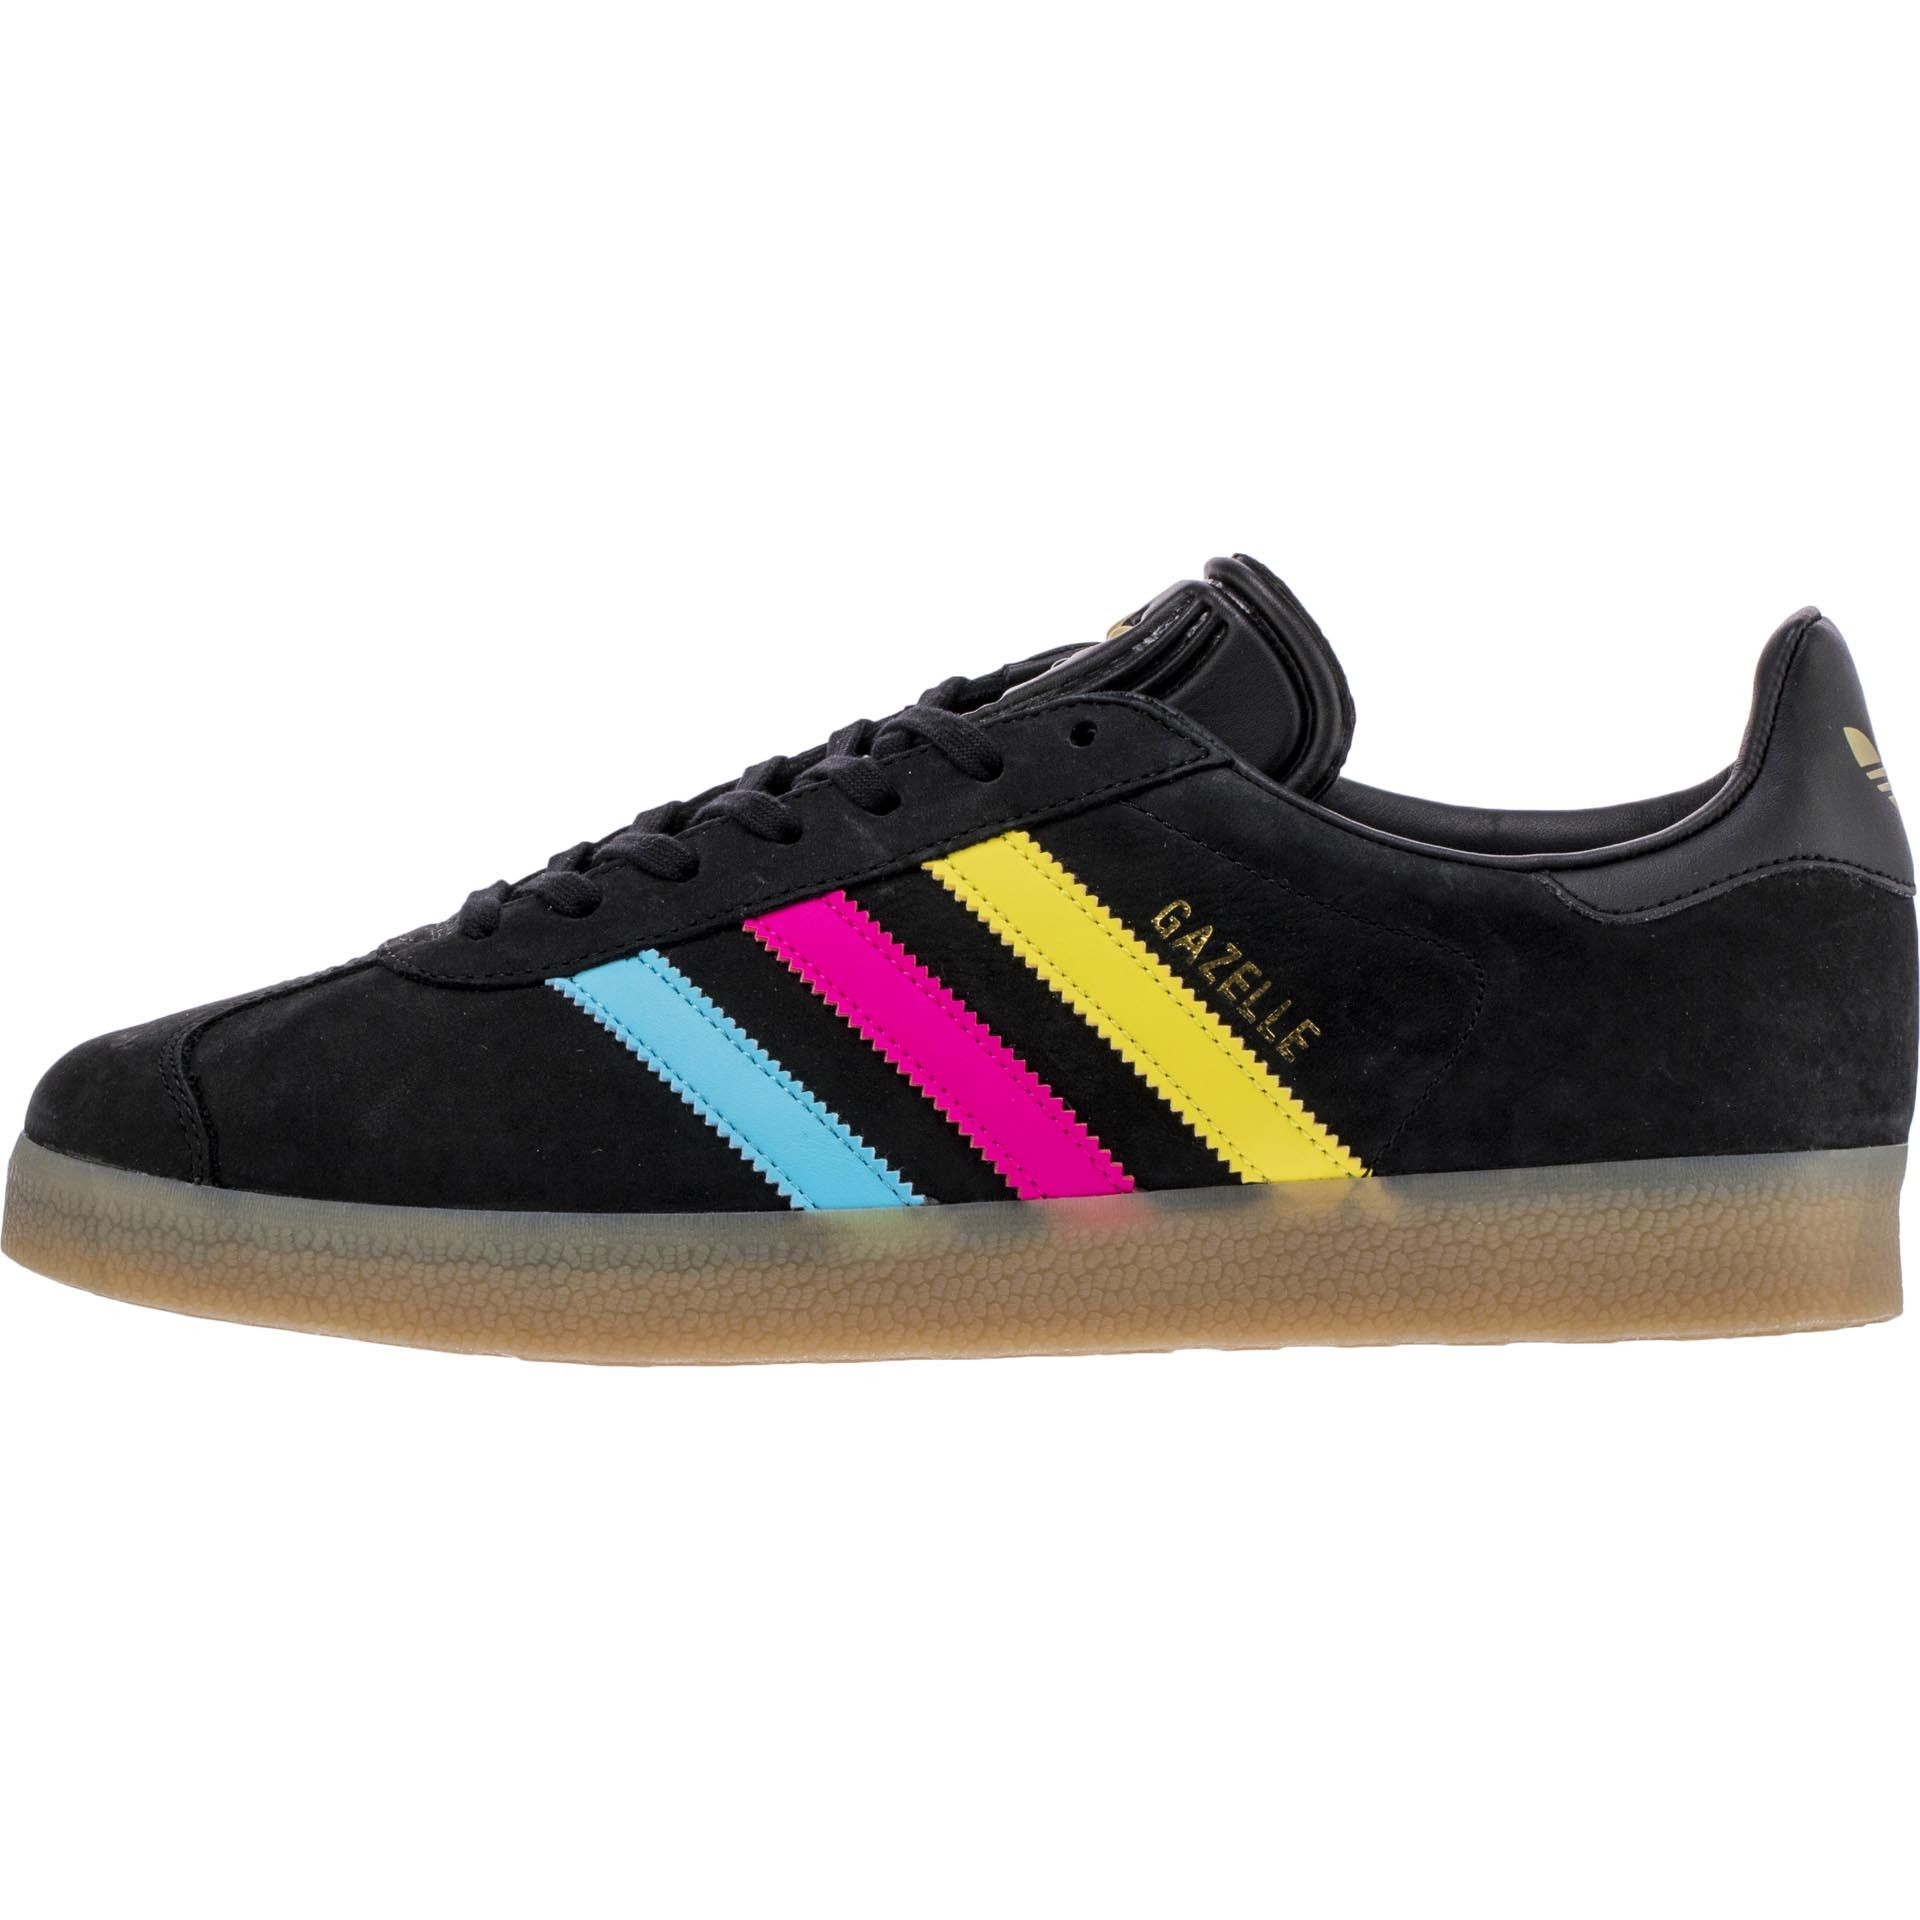 competitive price 58cfa c3593 90 ADIDAS GAZELLE MEN - BLACKPINKYELLOWBLUE